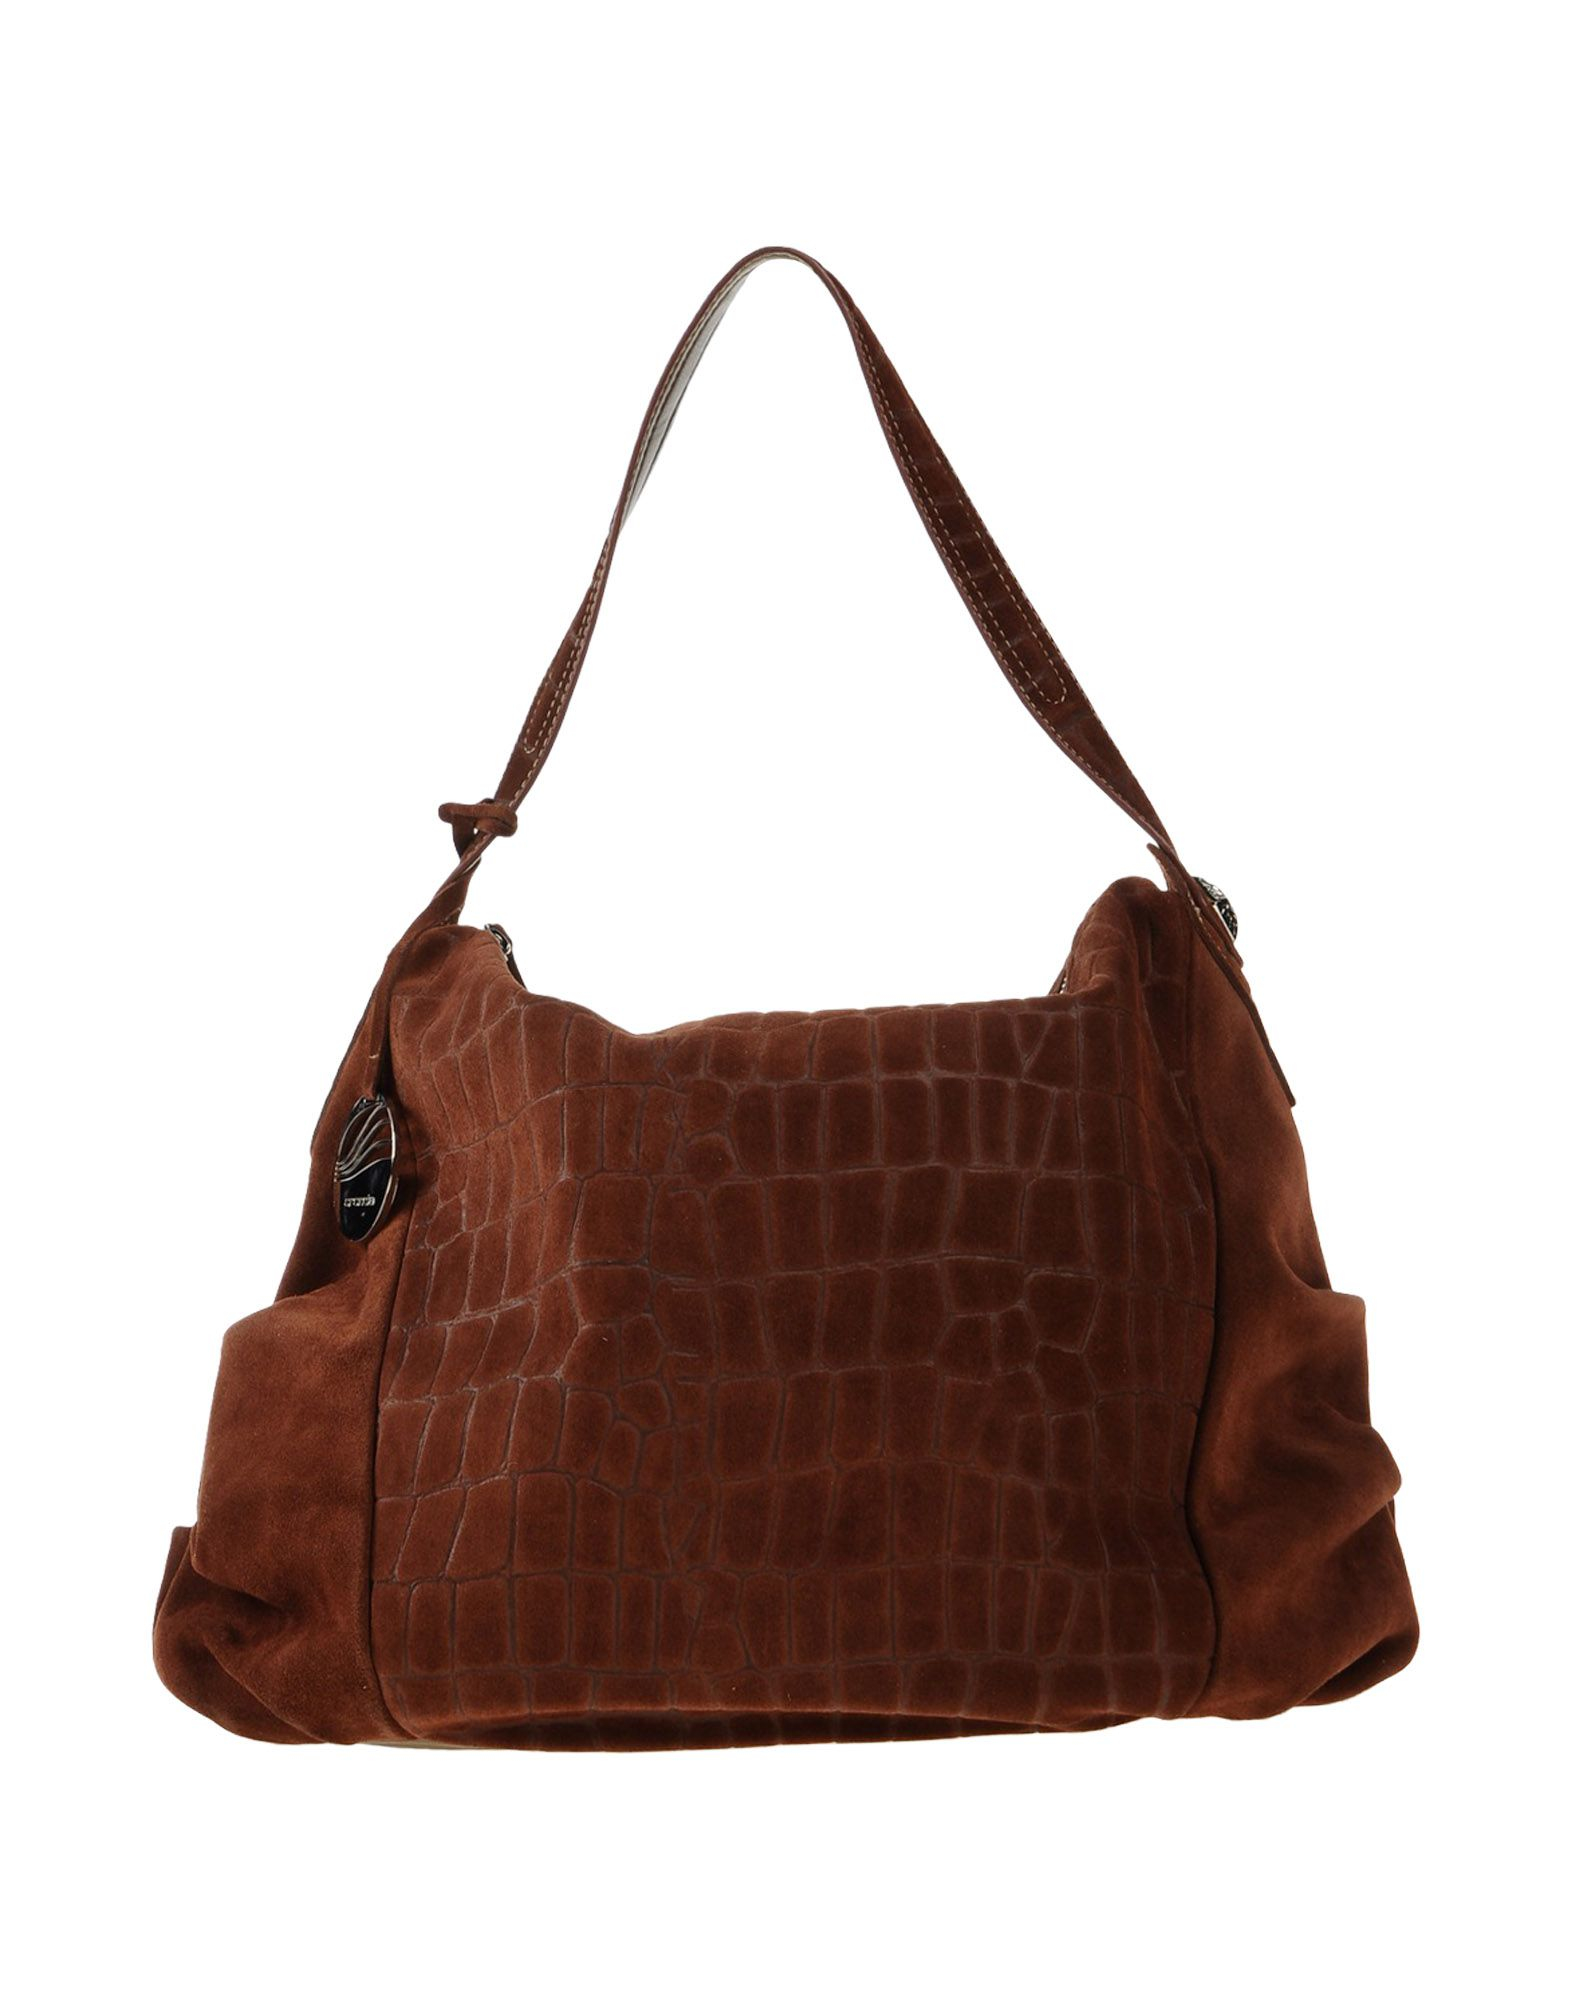 Crosia Handbags : Cromia Handbag in Brown (Cocoa) - Save 37% Lyst